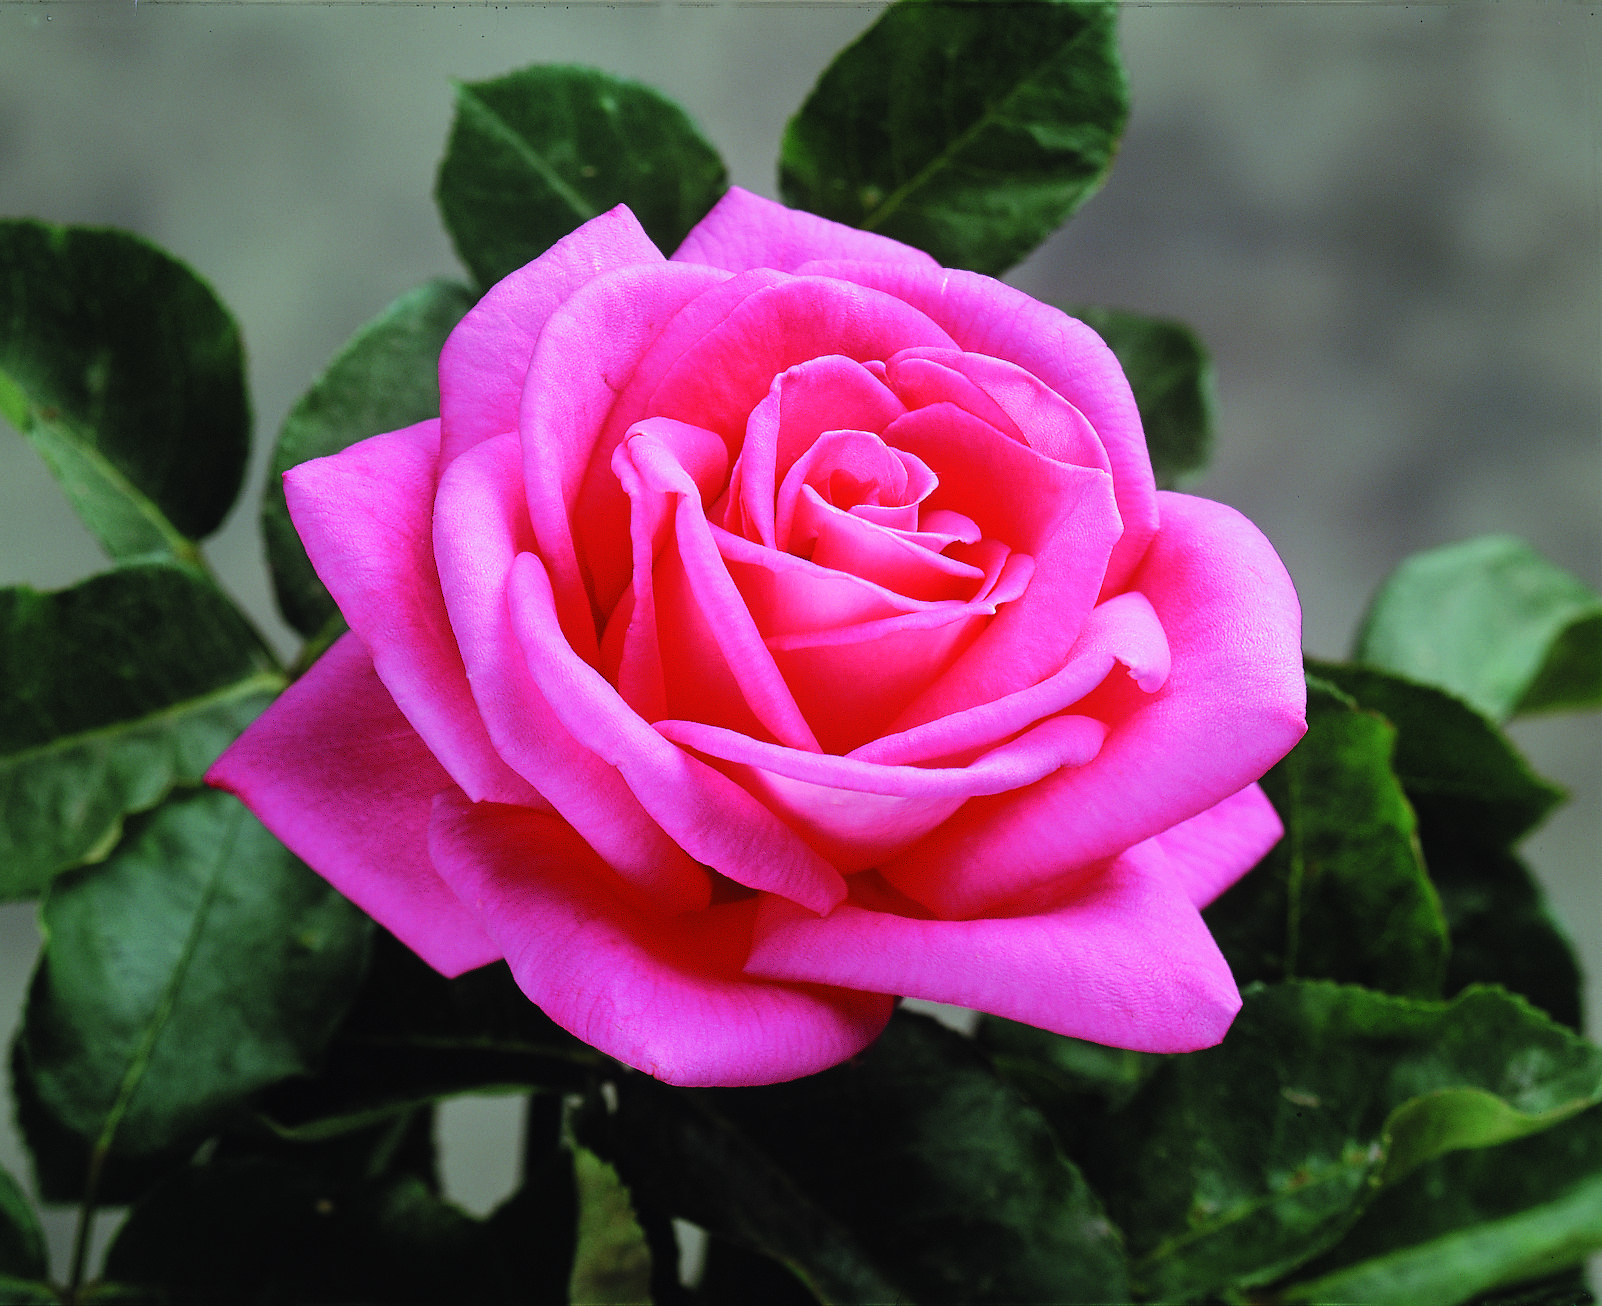 Our list of the most fragrant roses peter mayle star roses our list of the most fragrant roses peter mayle izmirmasajfo